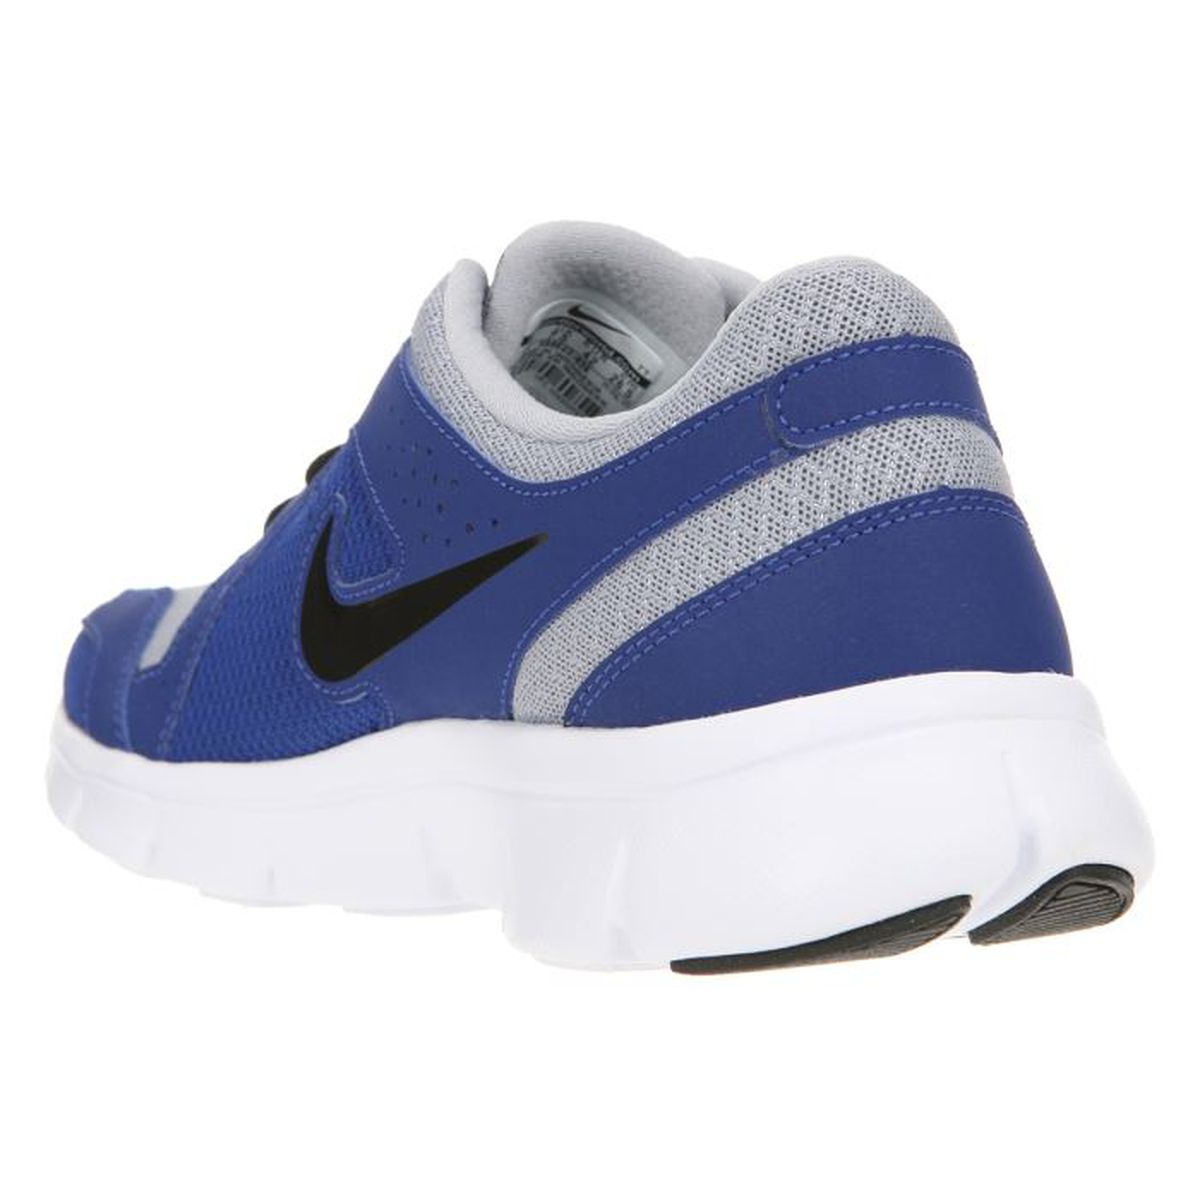 Rn Prix Nike Chaussures 2 Cher Experience Flex Running Pas Homme 6y7bgf